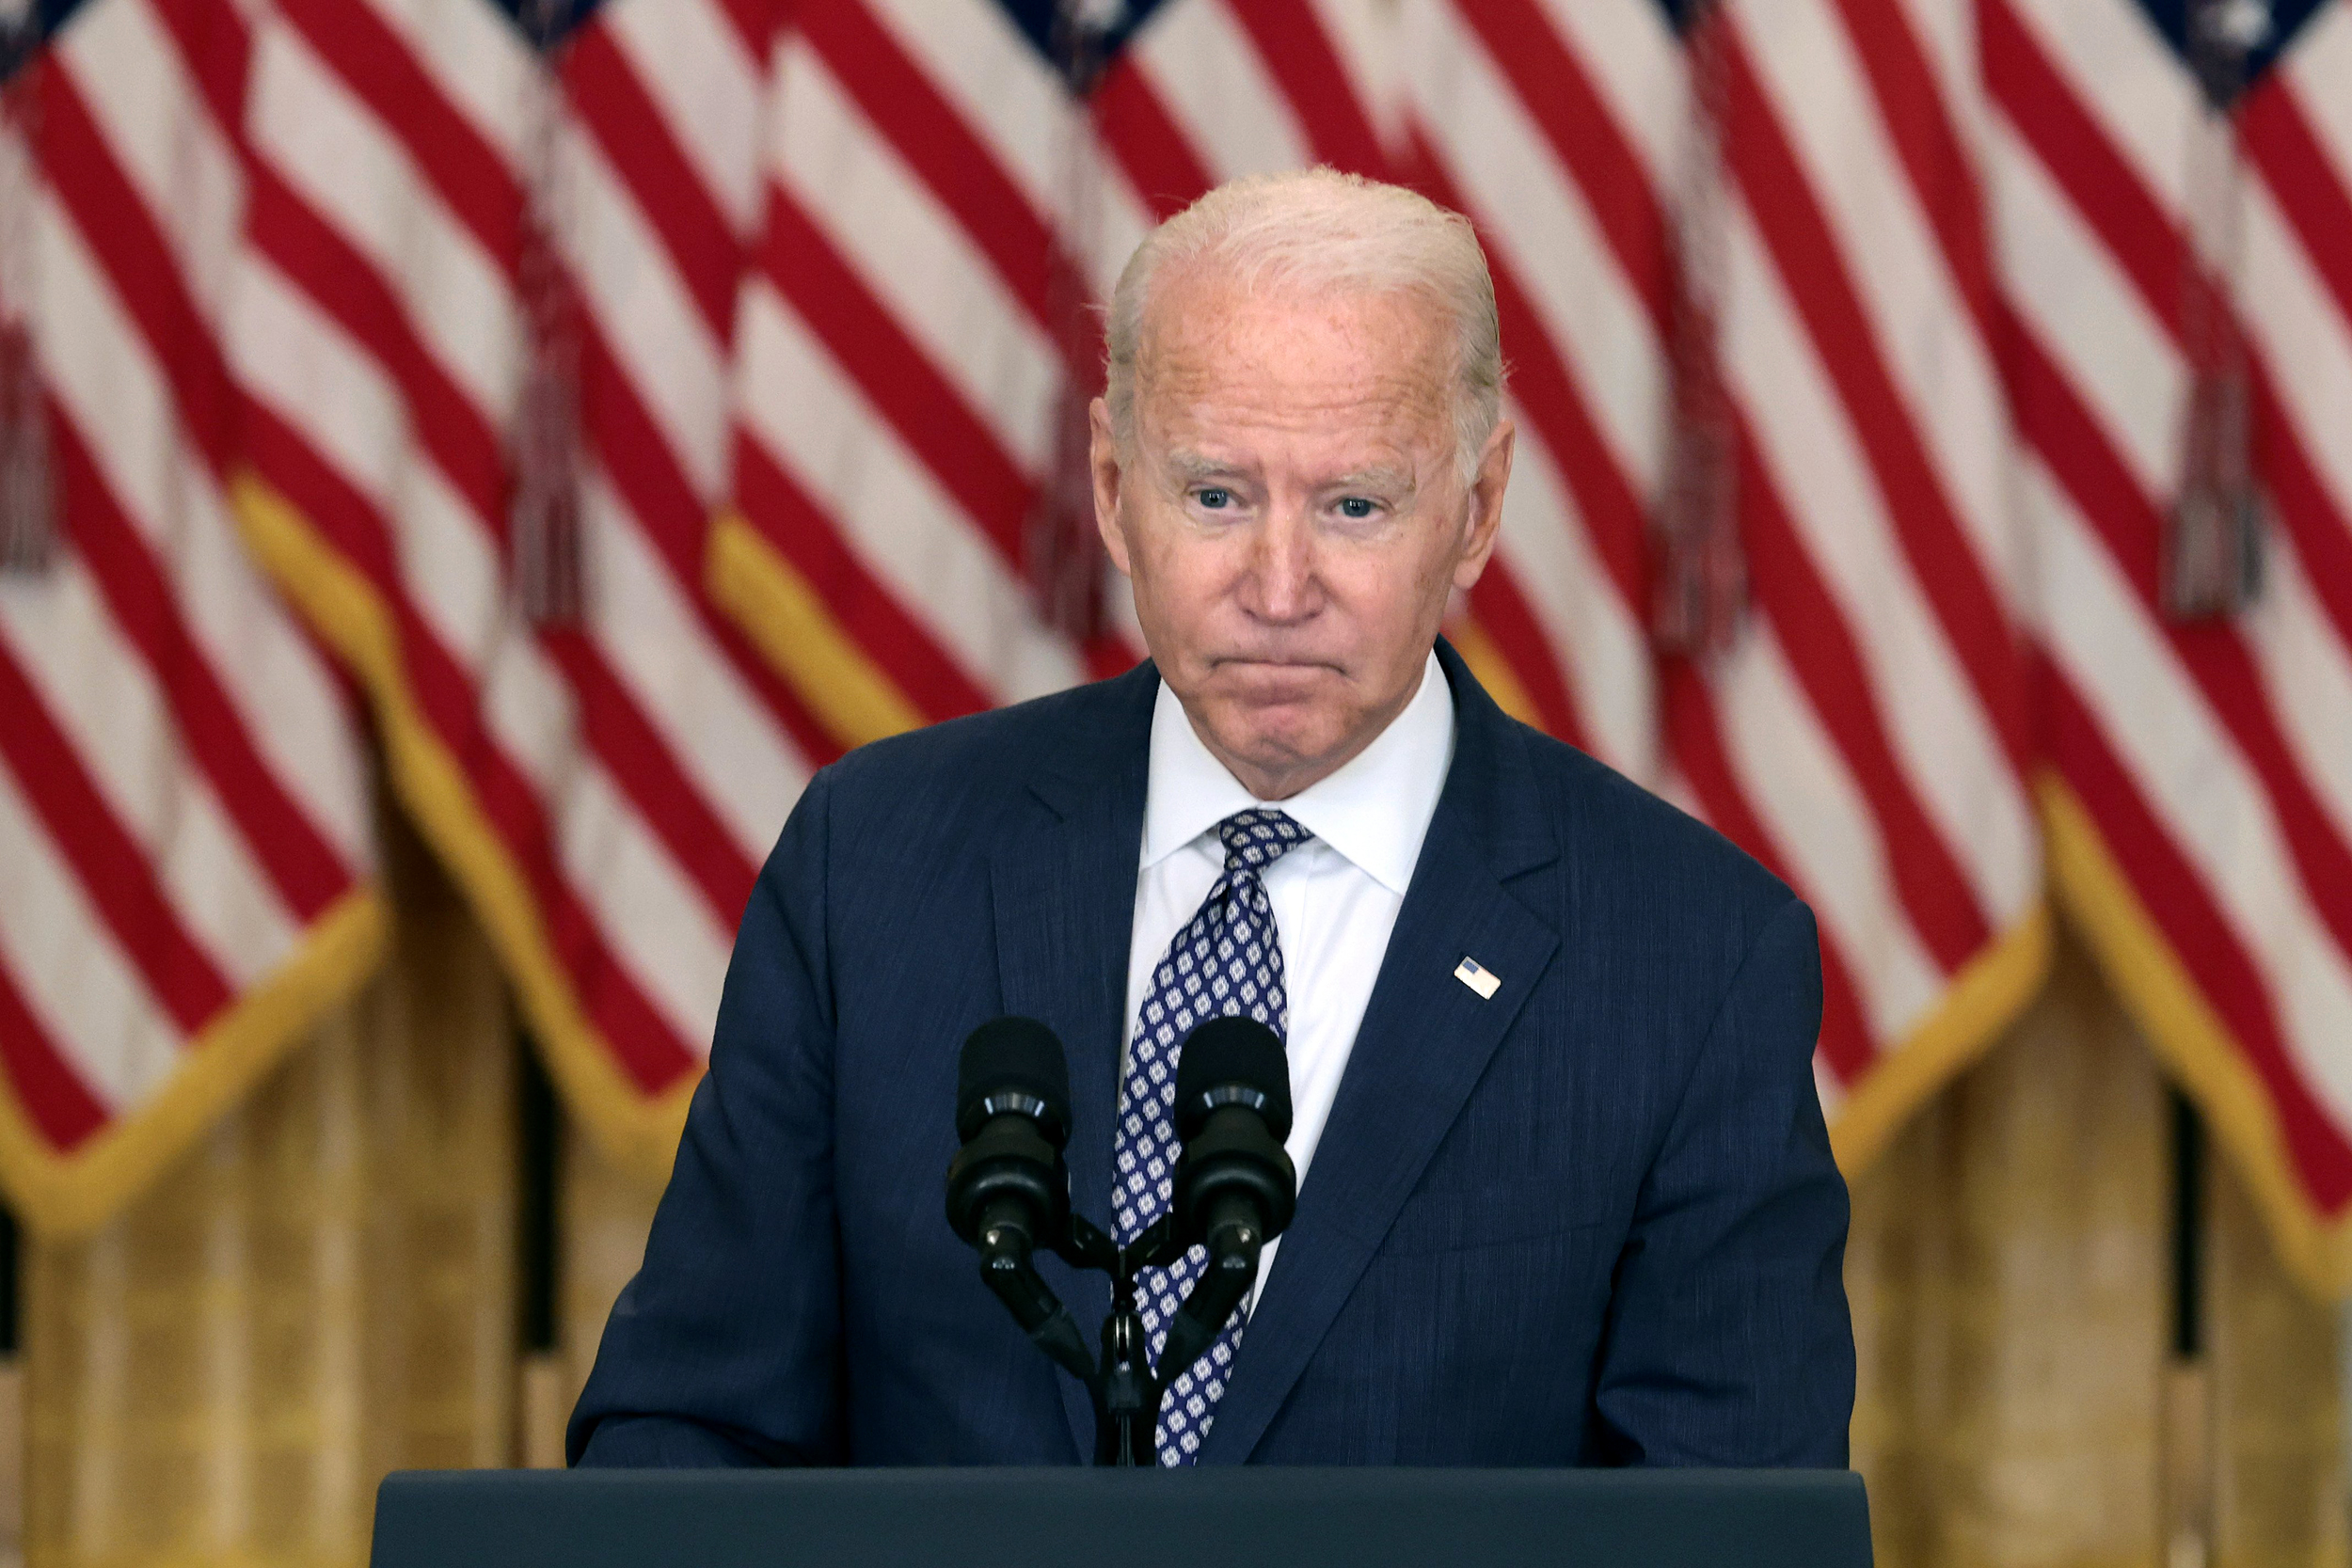 Biden's silver lining amid poll slide: Time is still on his side